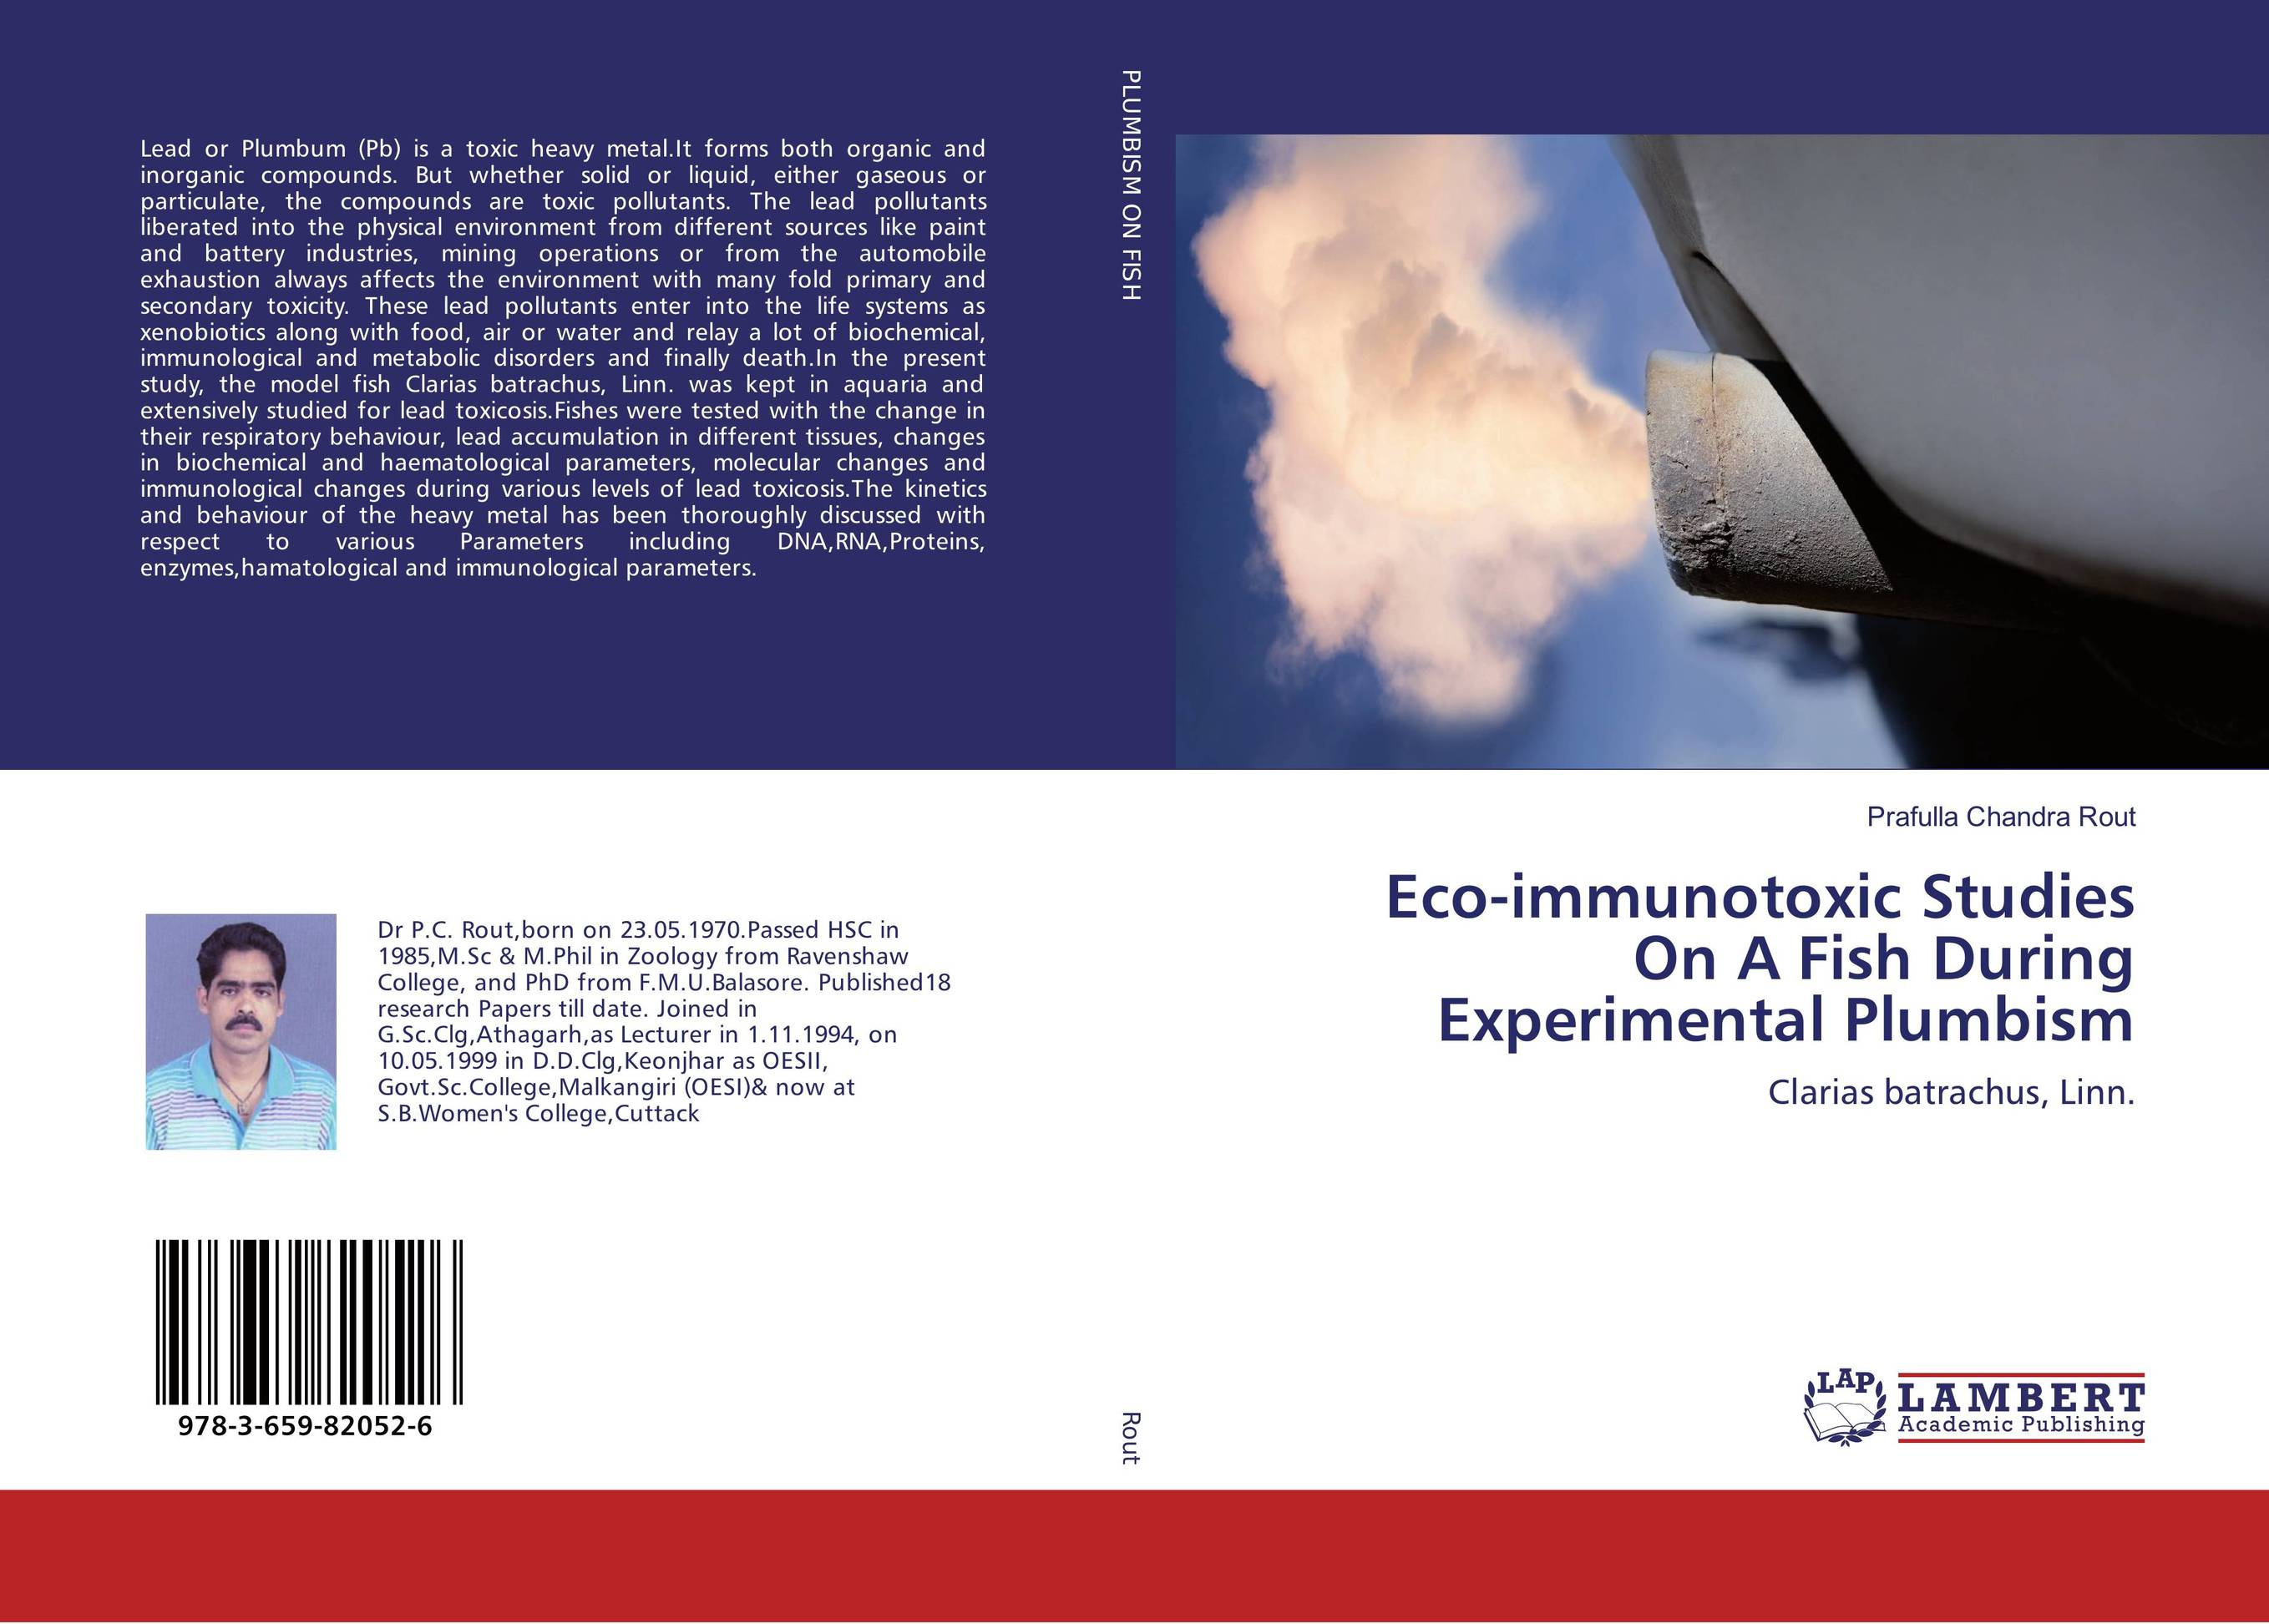 Eco-immunotoxic Studies On A Fish During Experimental Plumbism cadmium from earth crust to fish tissues